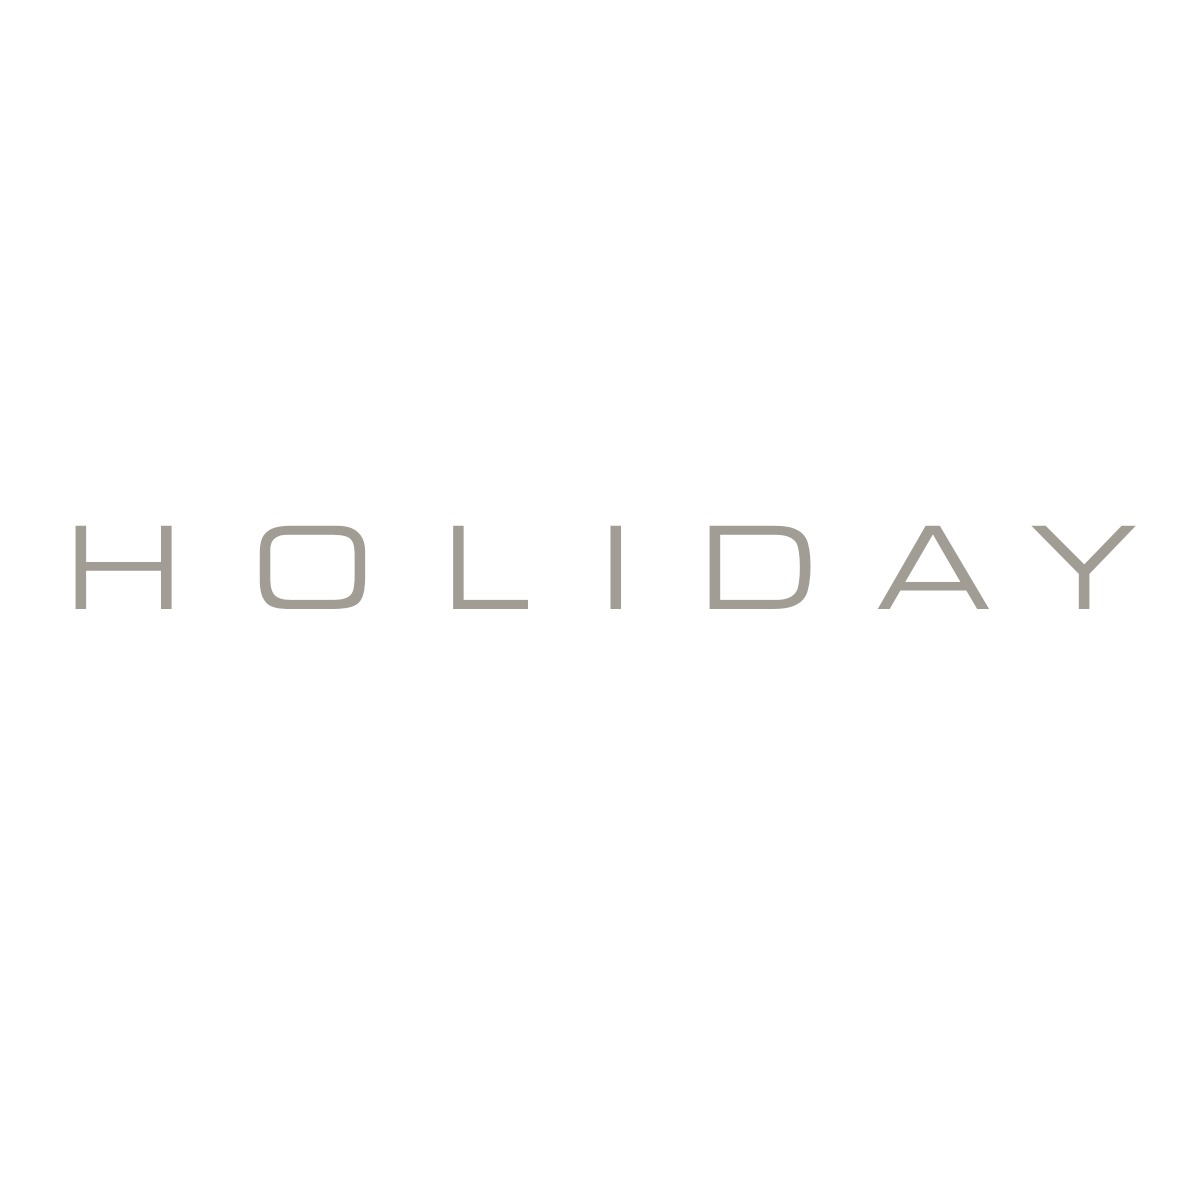 Holiday logo 1200 x 1200